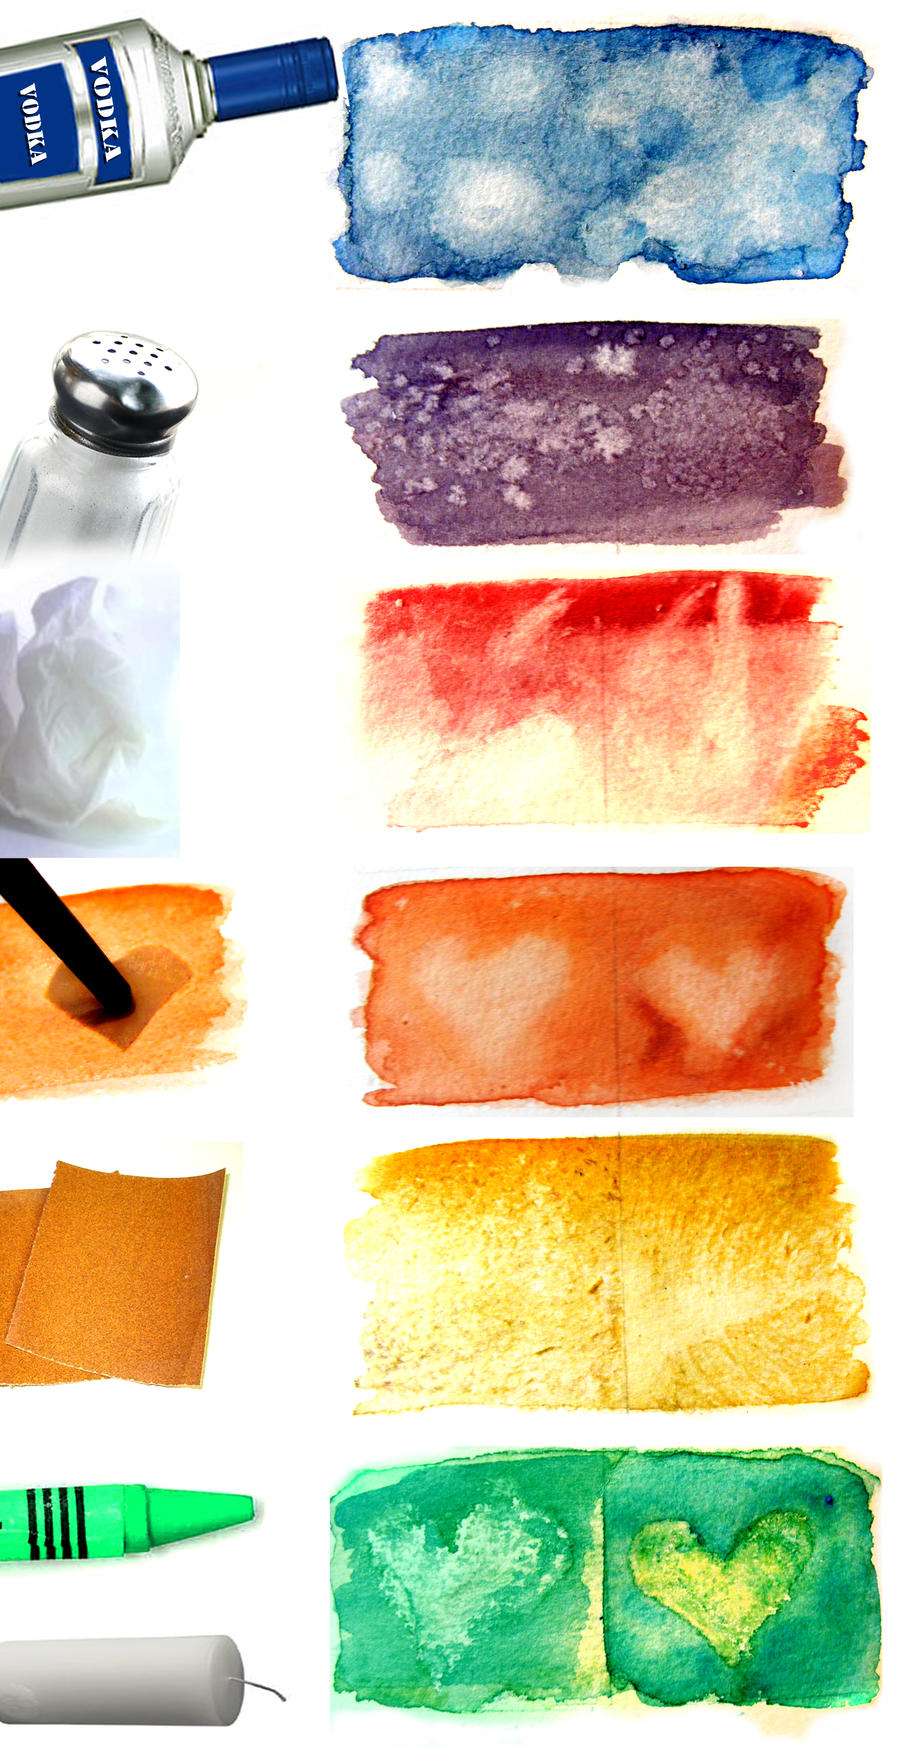 watercolour texture techniques by hatefueled on deviantart